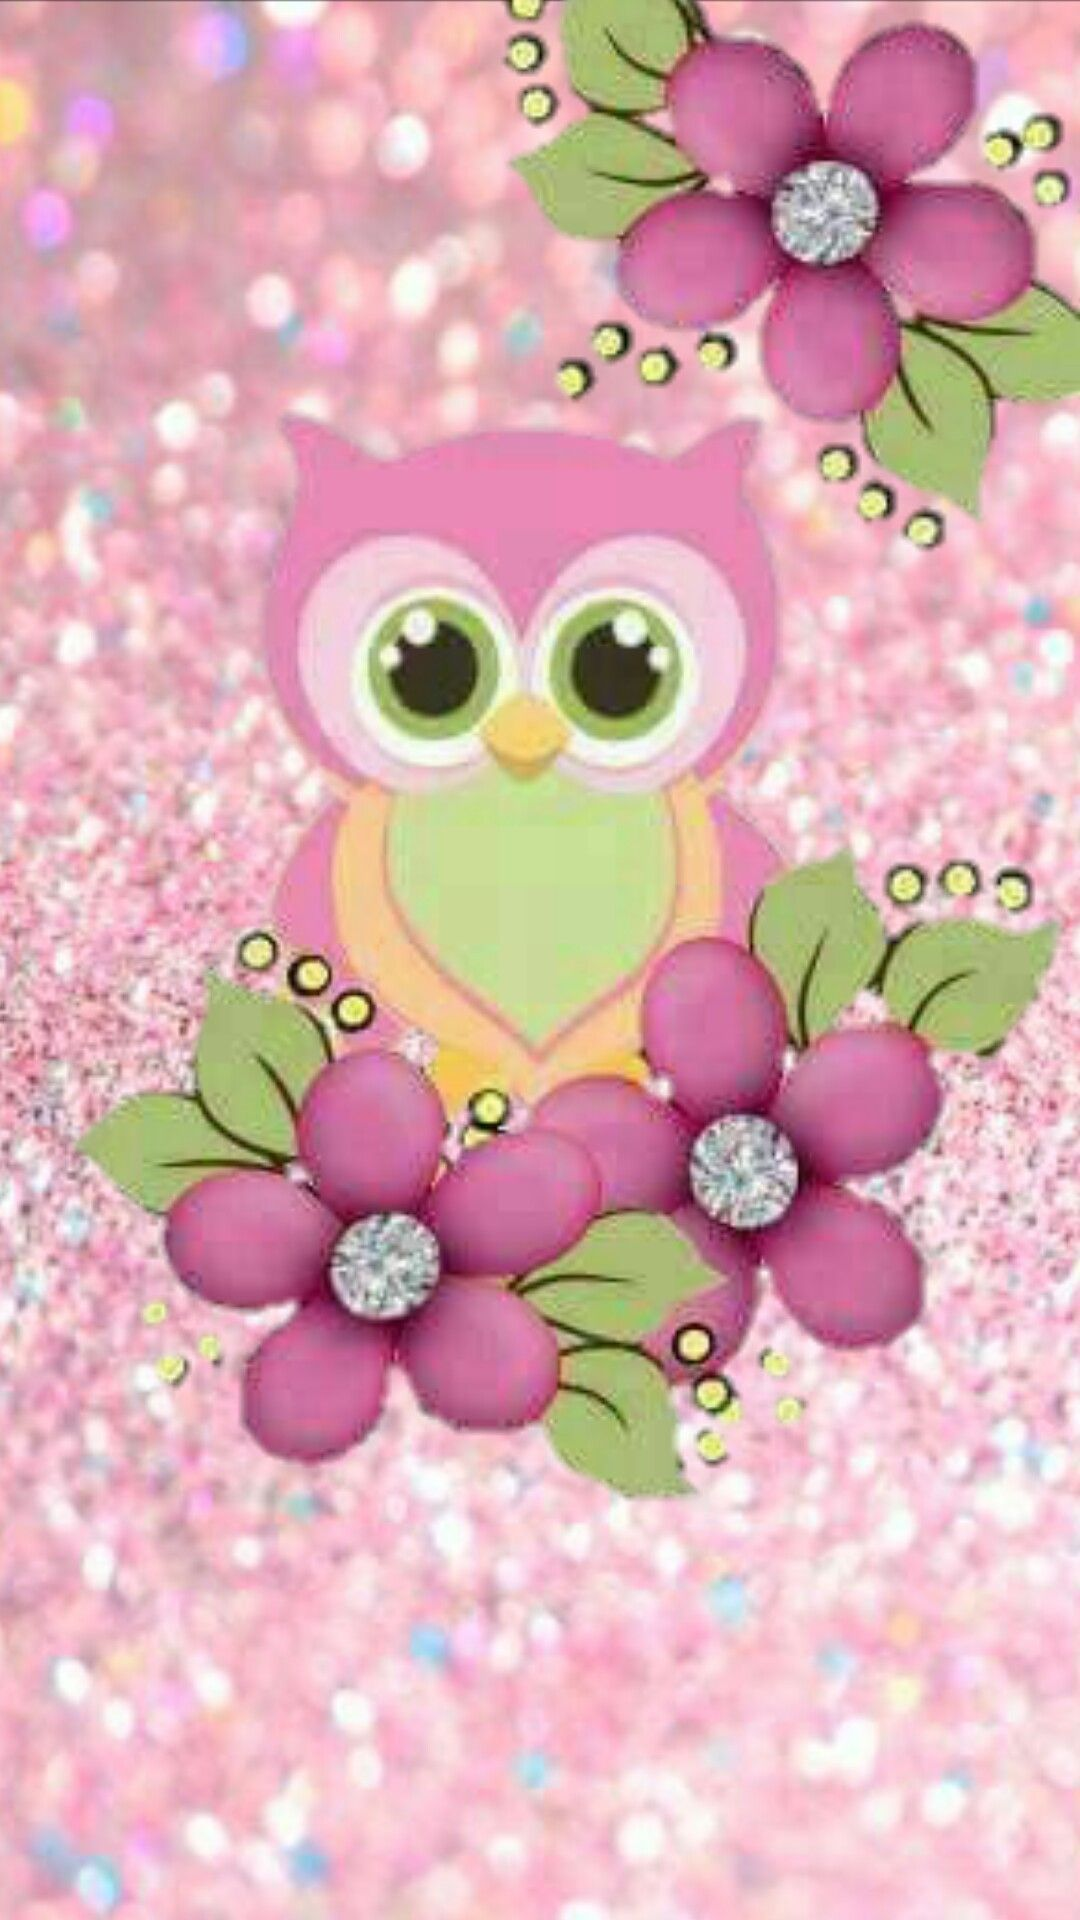 1080x1920 Cute Owl Tumblr Wallpapers For Iphone